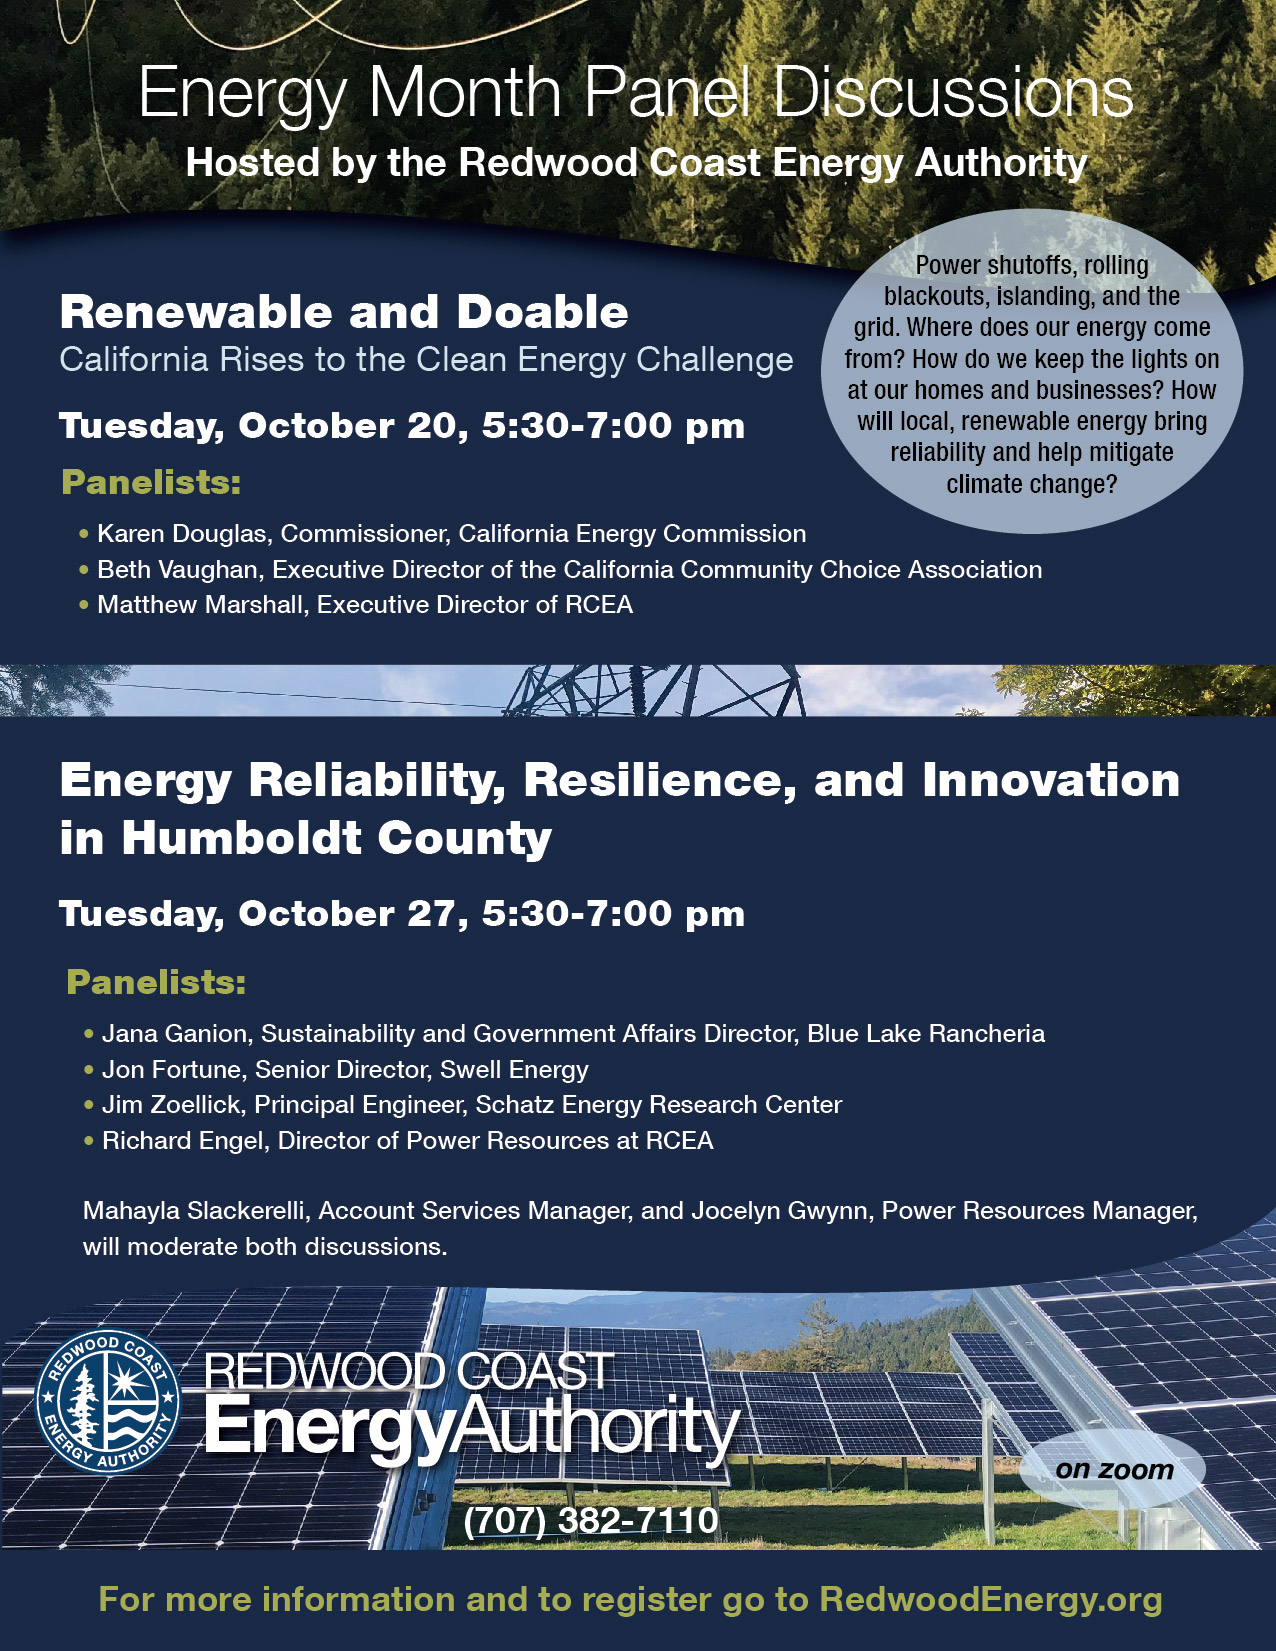 Energy Month Panel Discussions flyer